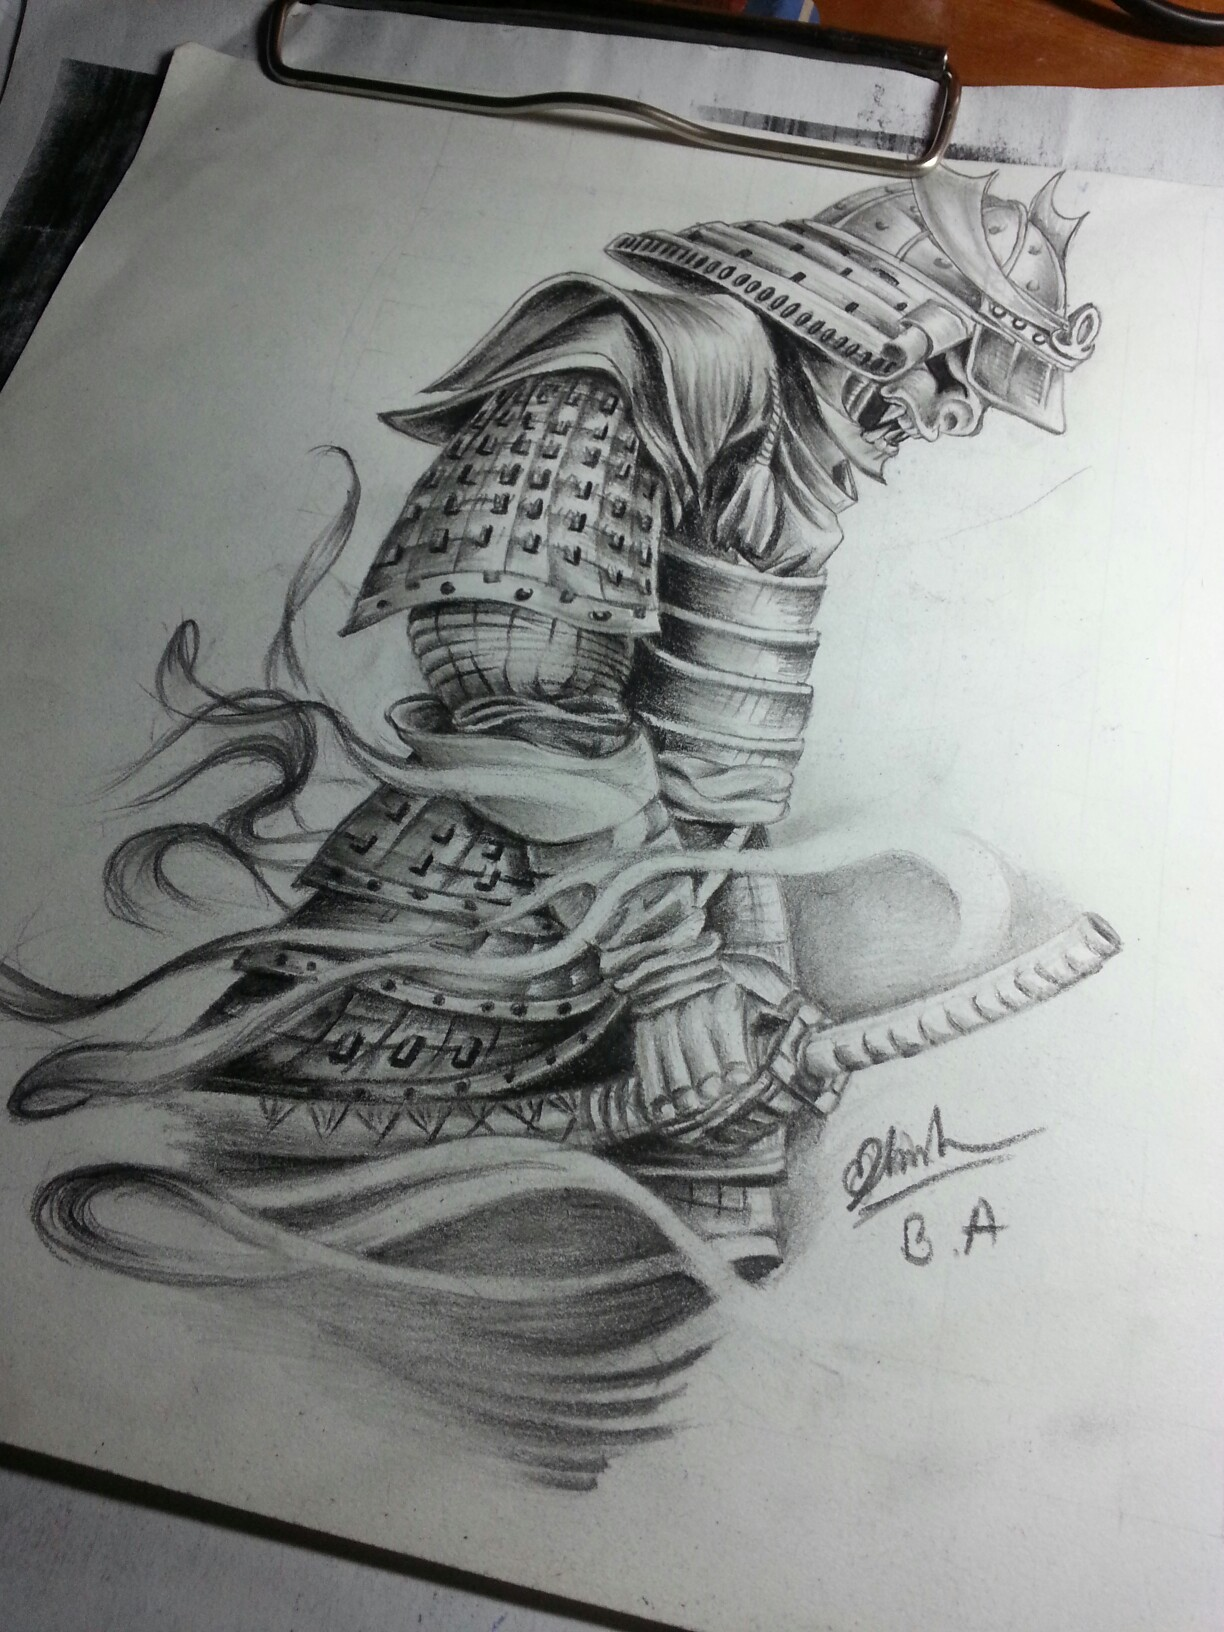 Drawn samurai pencil #by # for art #by